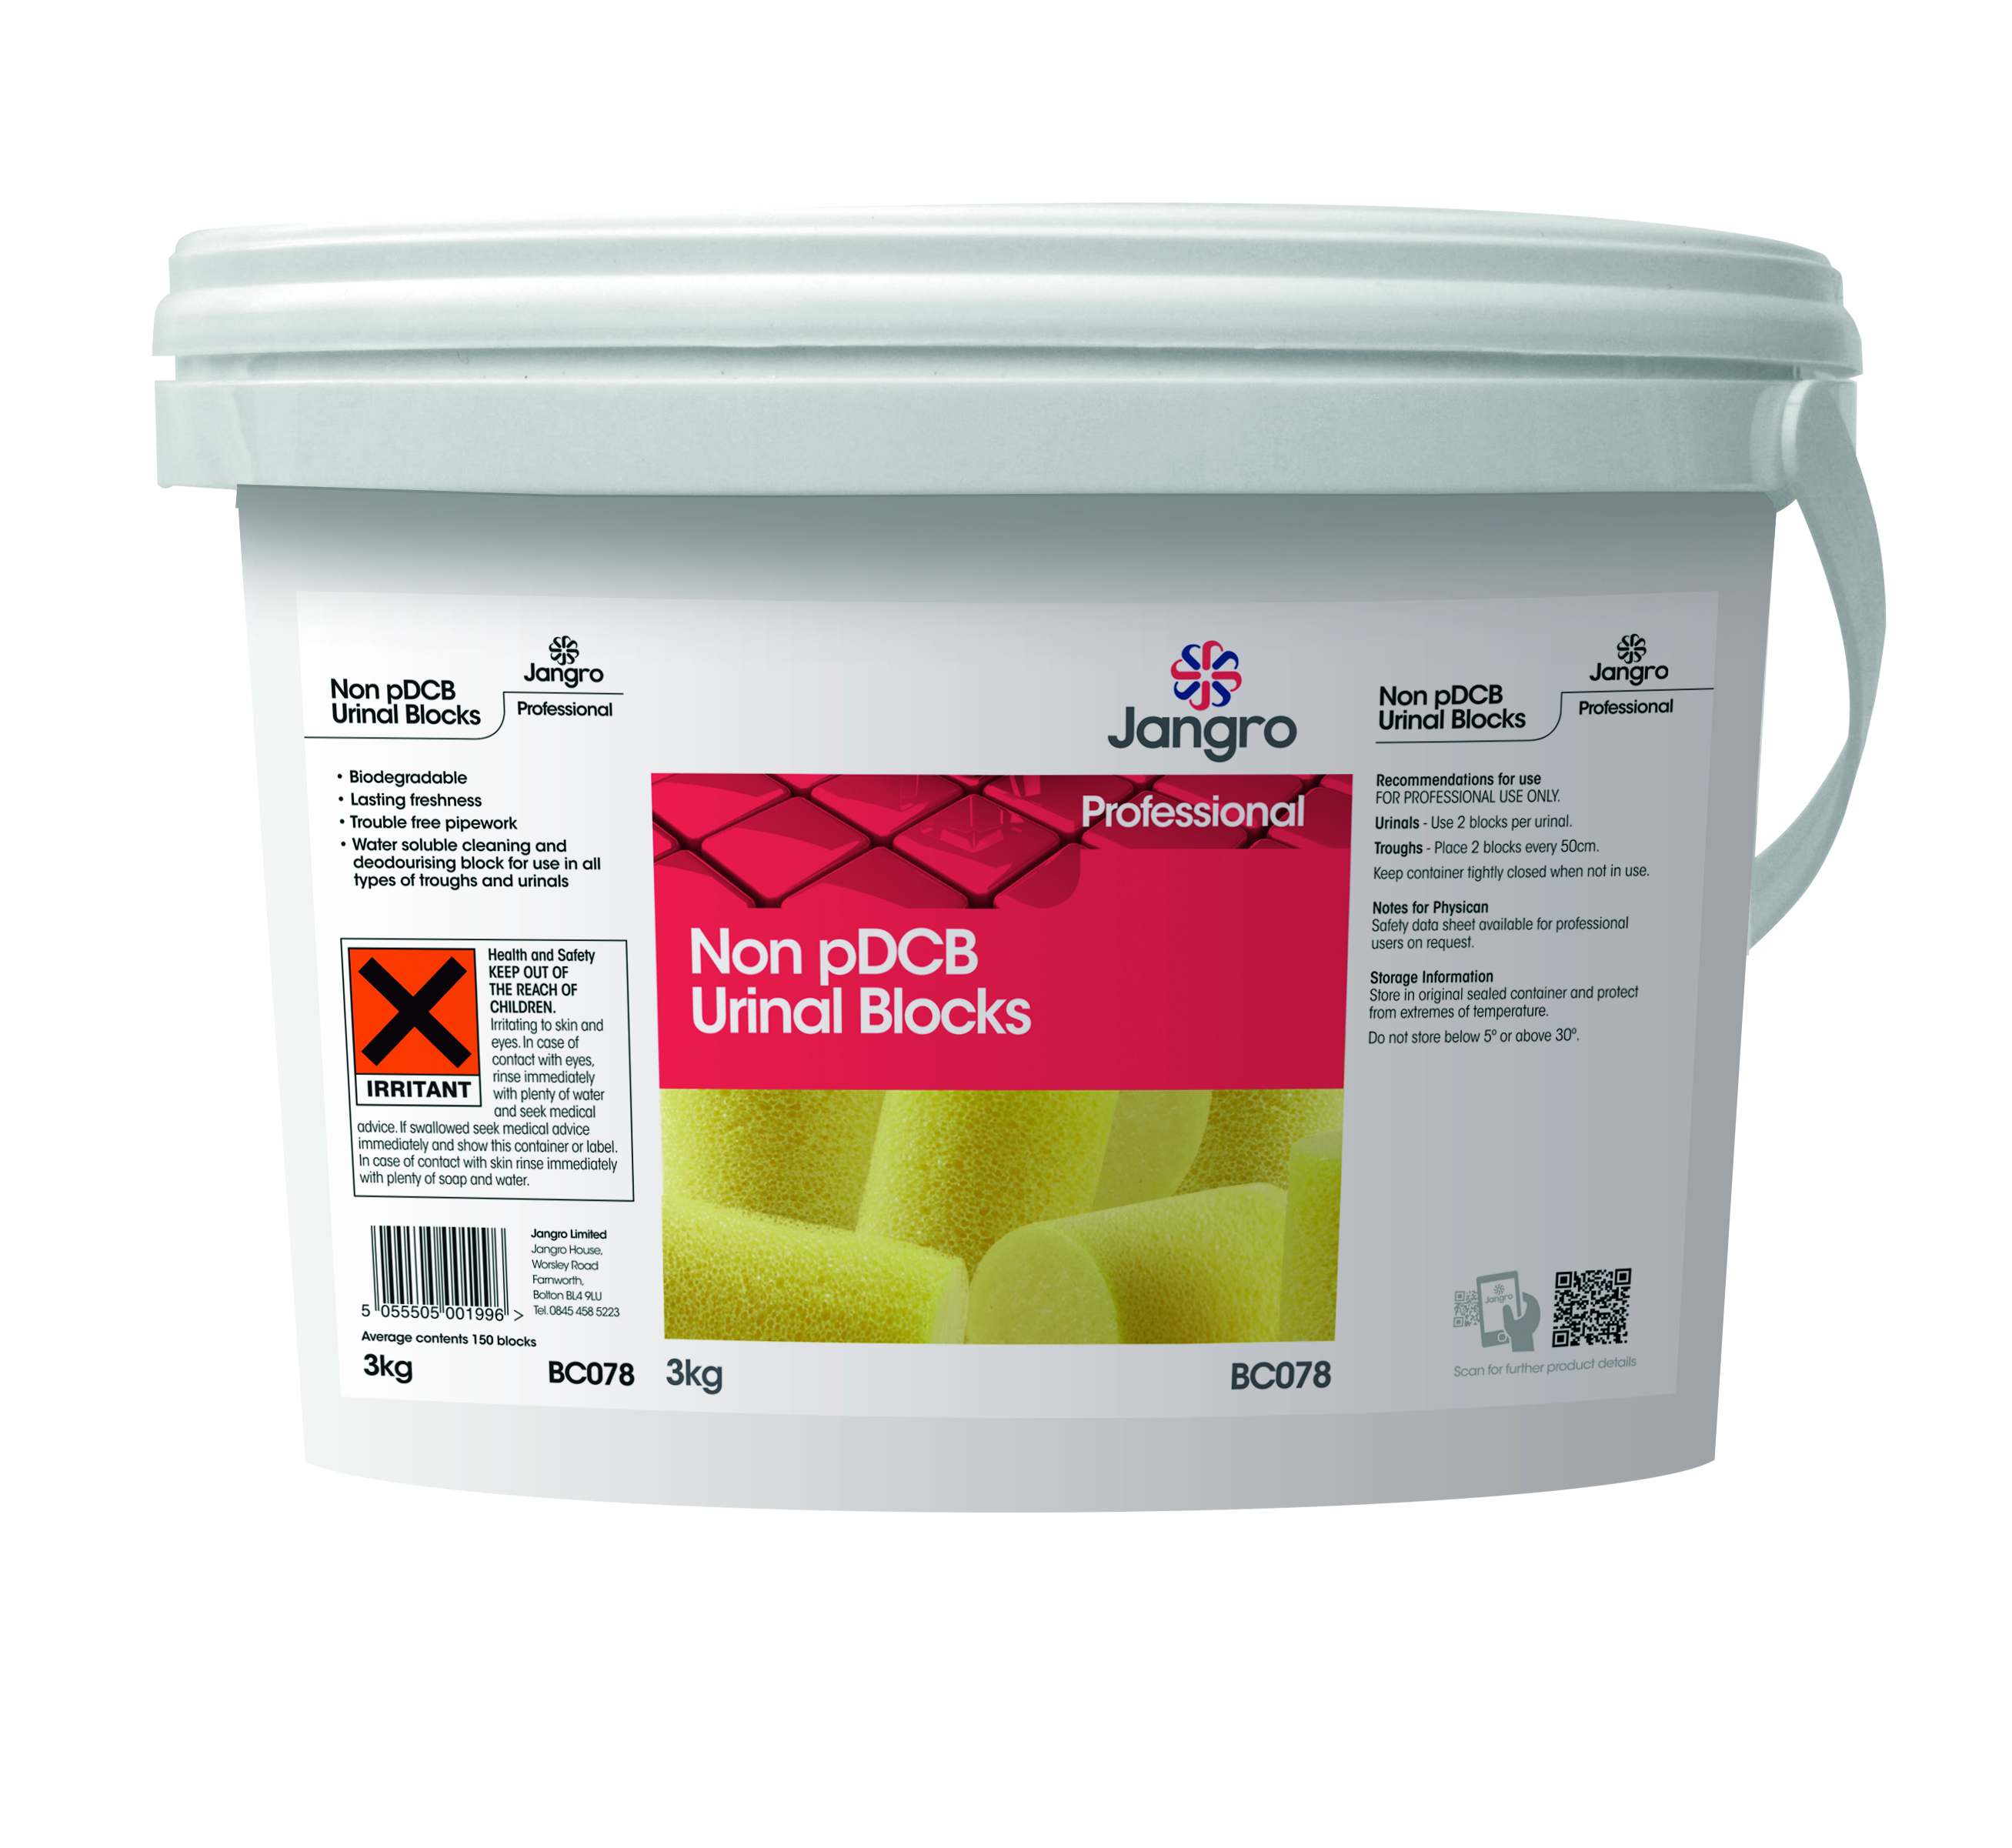 Jangro Non - PDCB Toilet Blocks 3Kg